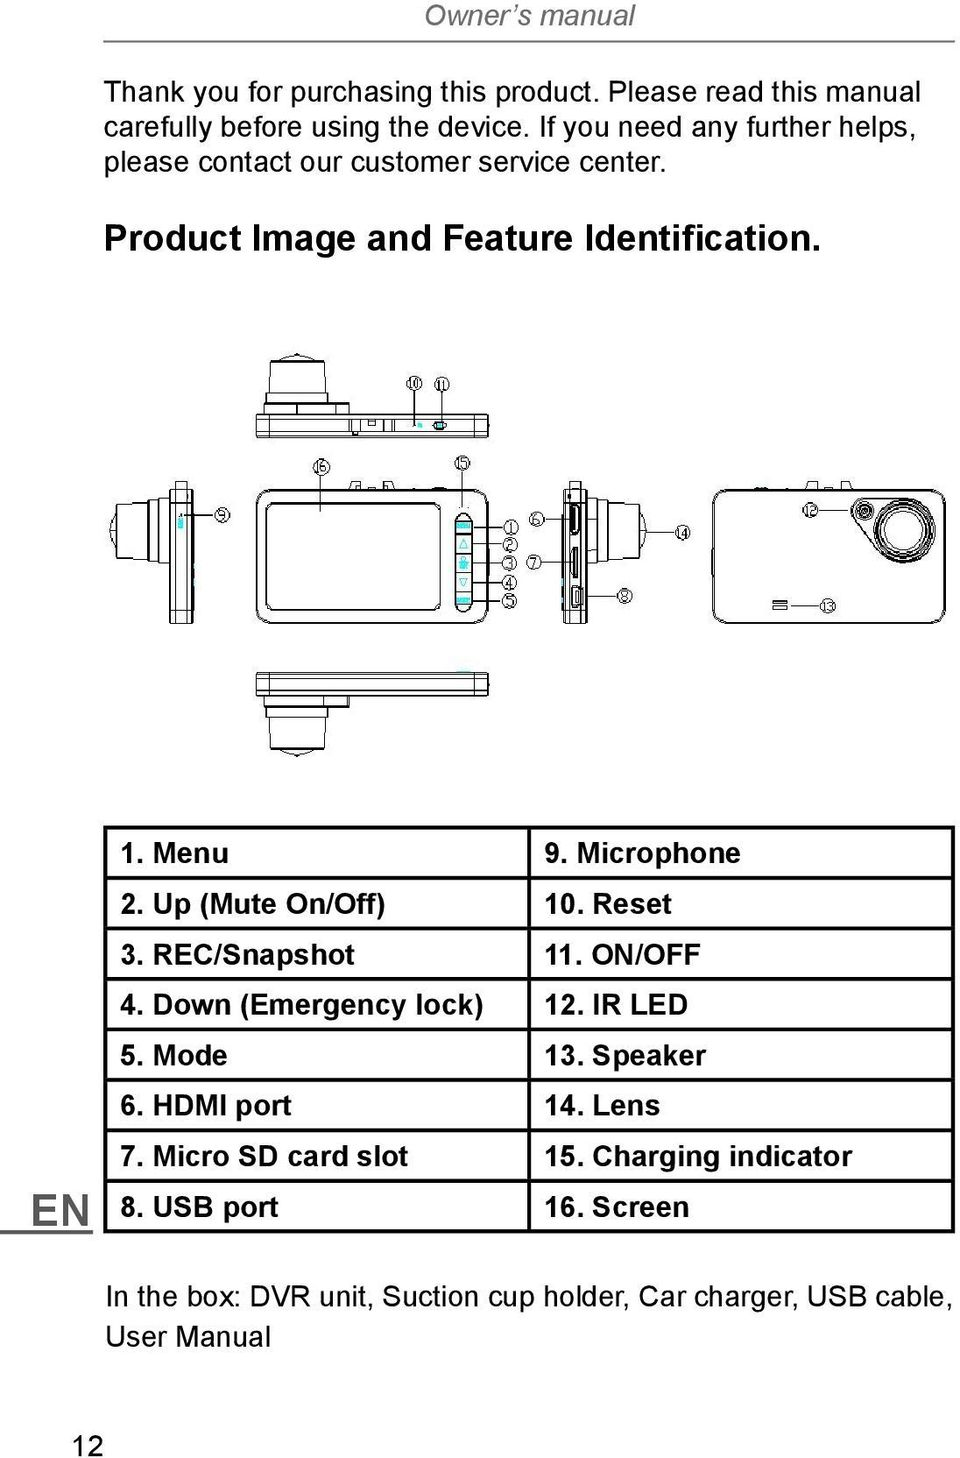 Microphone 2. Up (Mute On/Off) 10. Reset 3. REC/Snapshot 11. ON/OFF 4. Down (Emergency lock) 12. IR LED 5. Mode 13. Speaker 6.